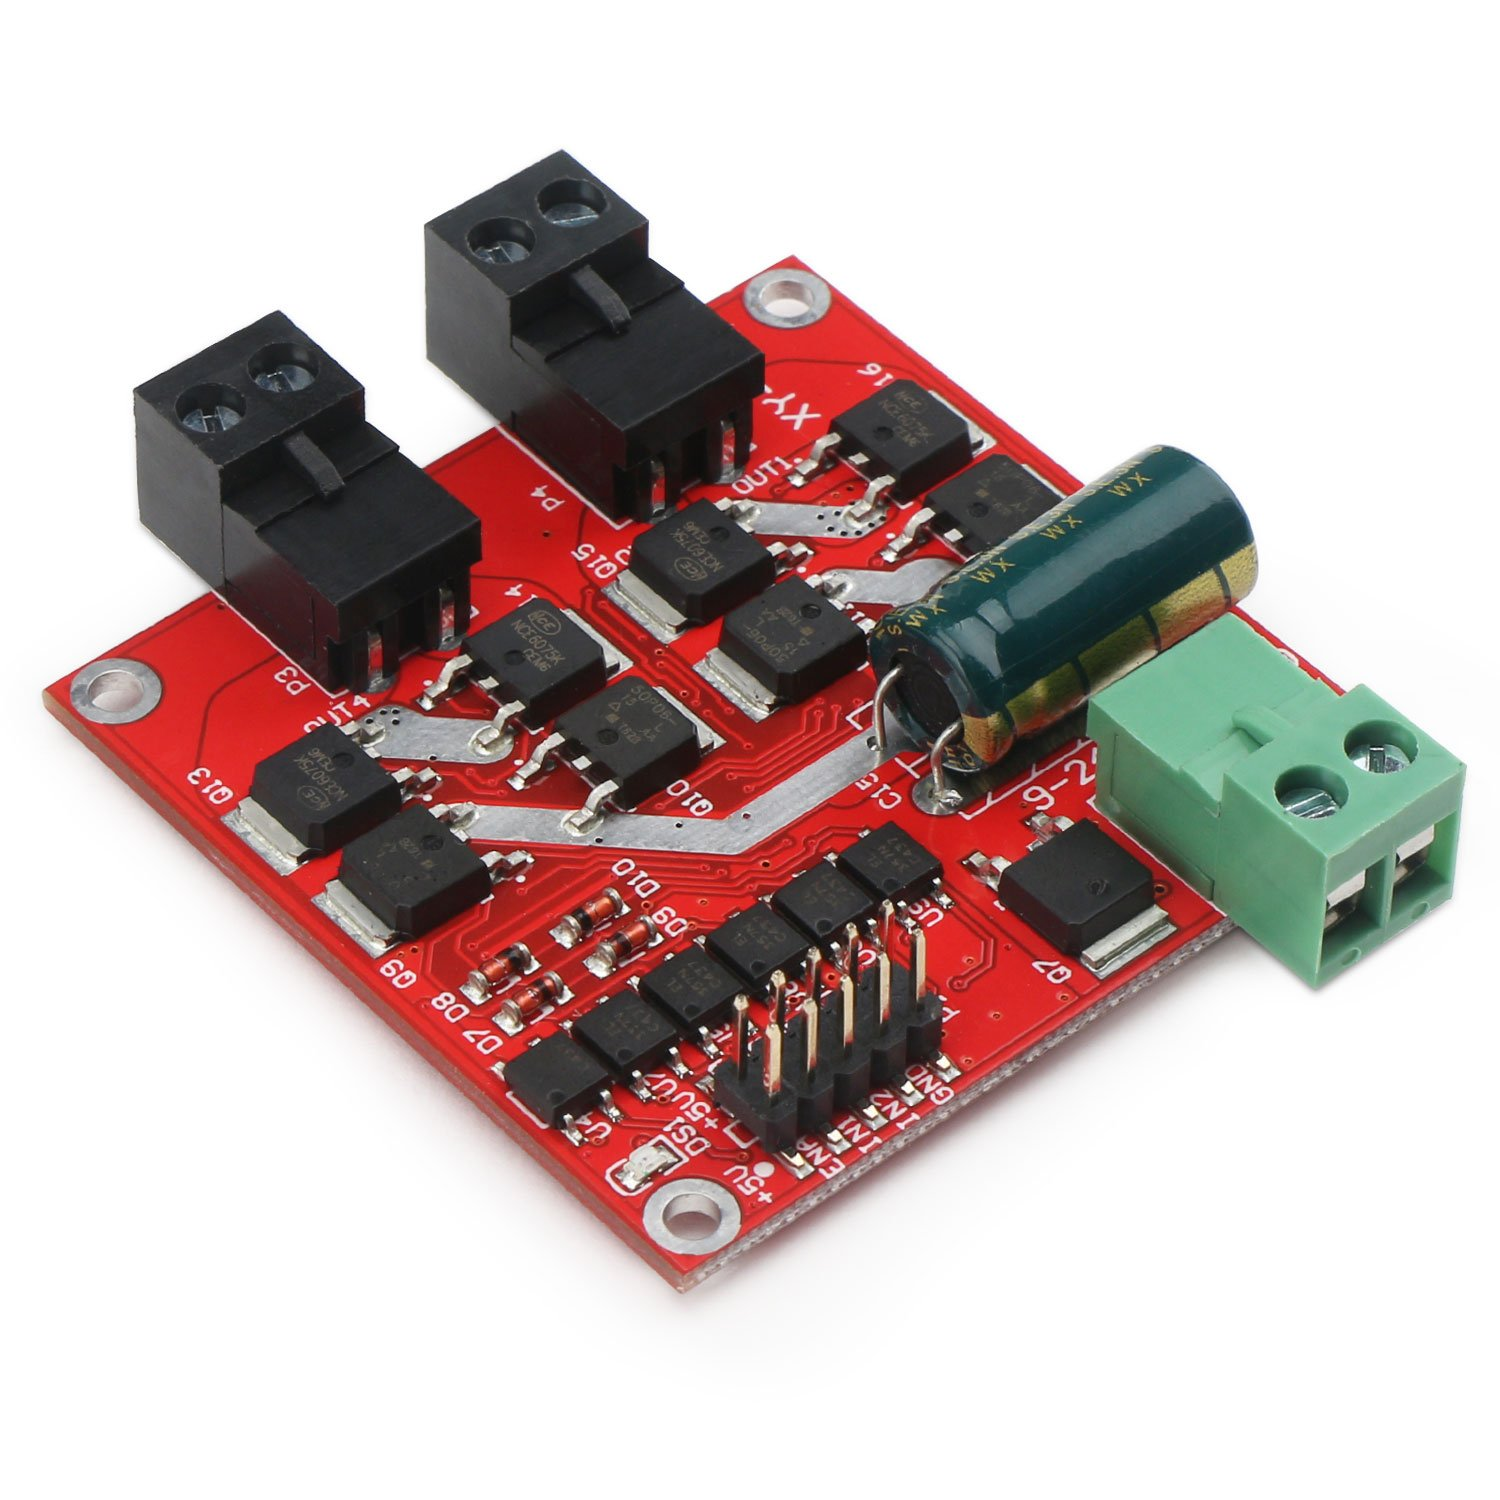 Dc Motor Driver Drok L298 Dual H Bridge Speed Controller Diagram Together With Circuit Pin On 65v 27v 7a Pwm Regulator Board 12v 24v Electric Control Module Industrial